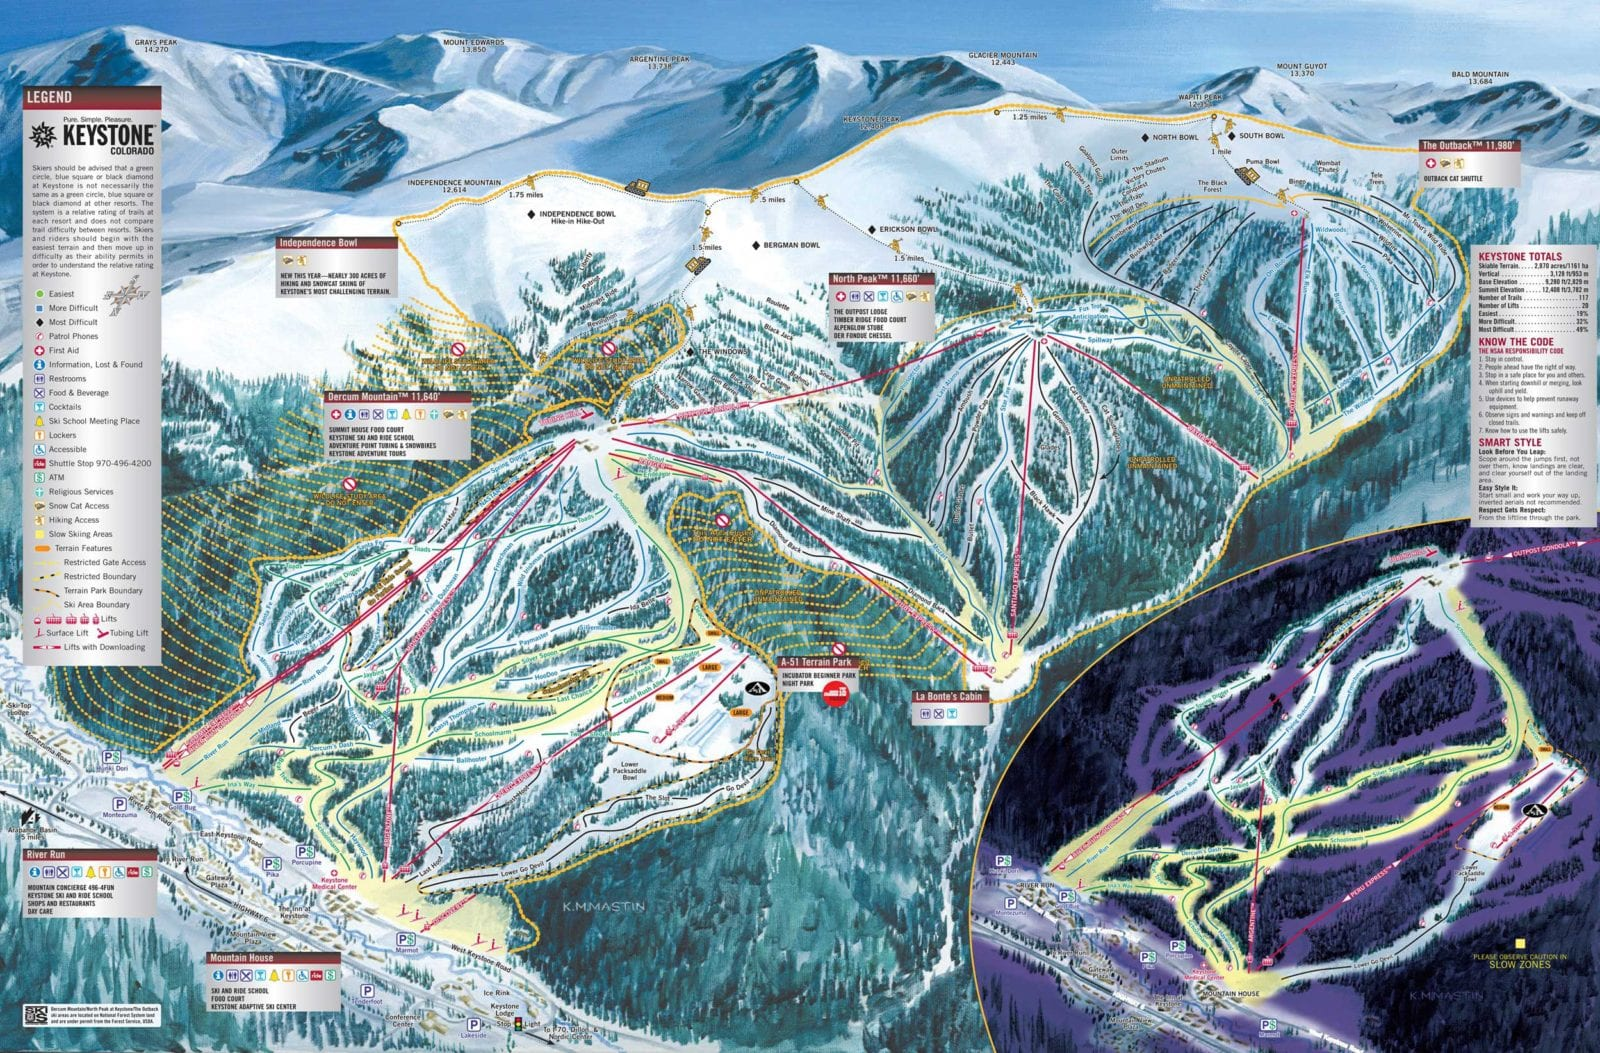 Keystone Ski Resort Colorado Ski Areas - Map of colorado ski resorts and cities